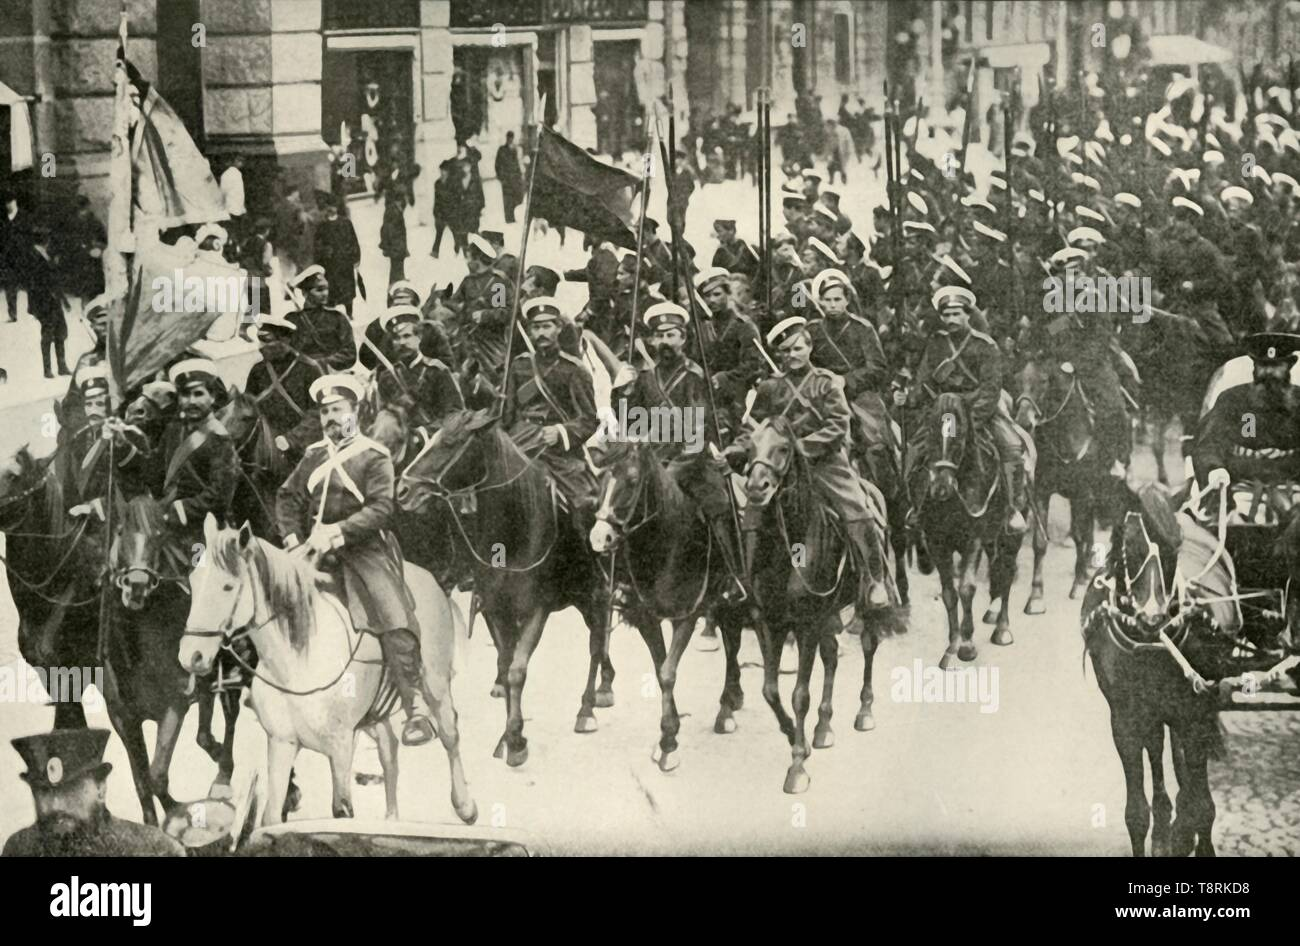 """'Types of the Russian Cavalry', (1919). Scene from the First World War, 1914-1919: 'The Russian cavalry have peculiar methods of attack like no other cavalry in the world.' From """"The History of the Great European War: its causes and effects"""", Vol. I, by W. Stanley Macbean Knight. [Caxton Pulishing Company, Limited, London, 1919] - Stock Image"""